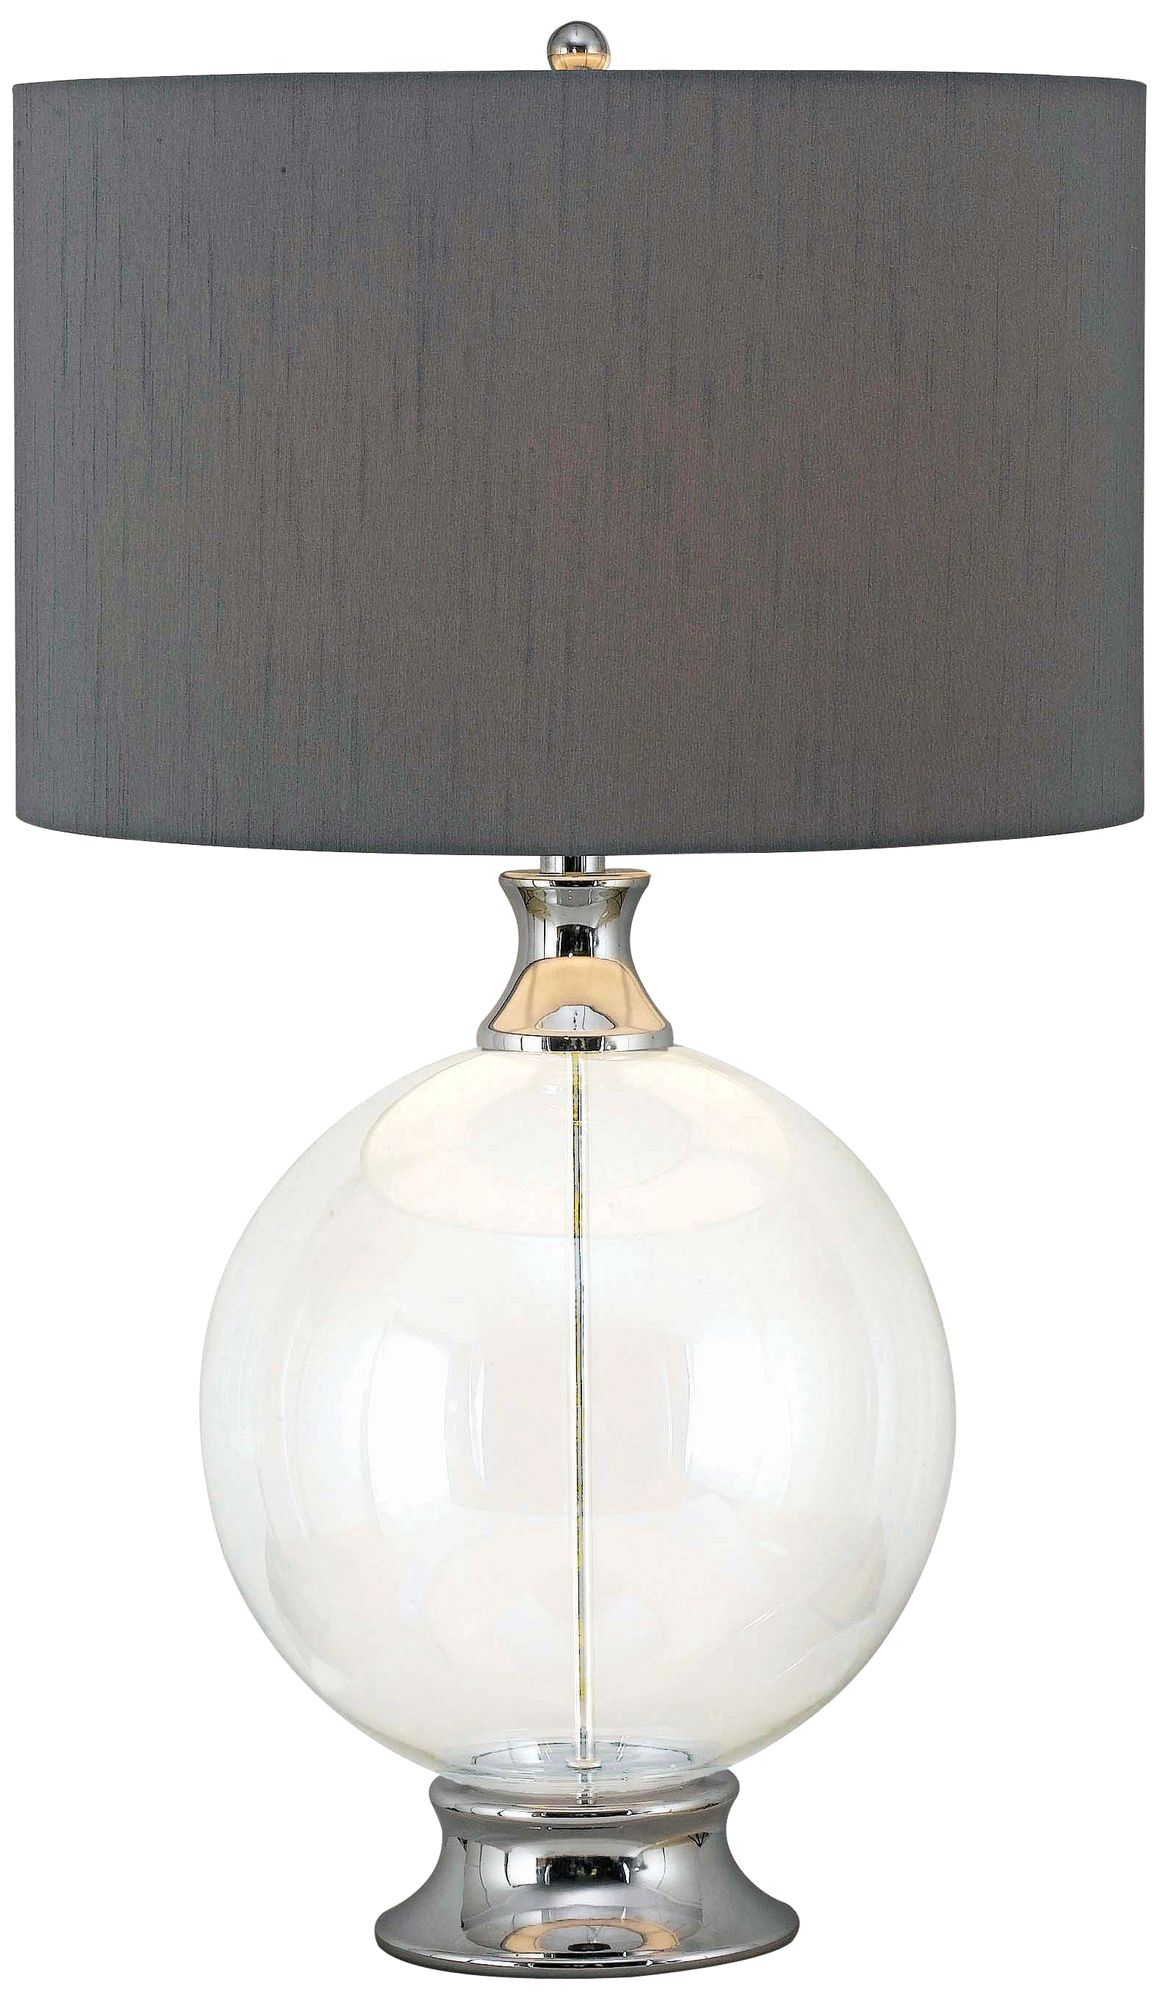 Awesome Kenroy Home Celestial Glass Table Lamp